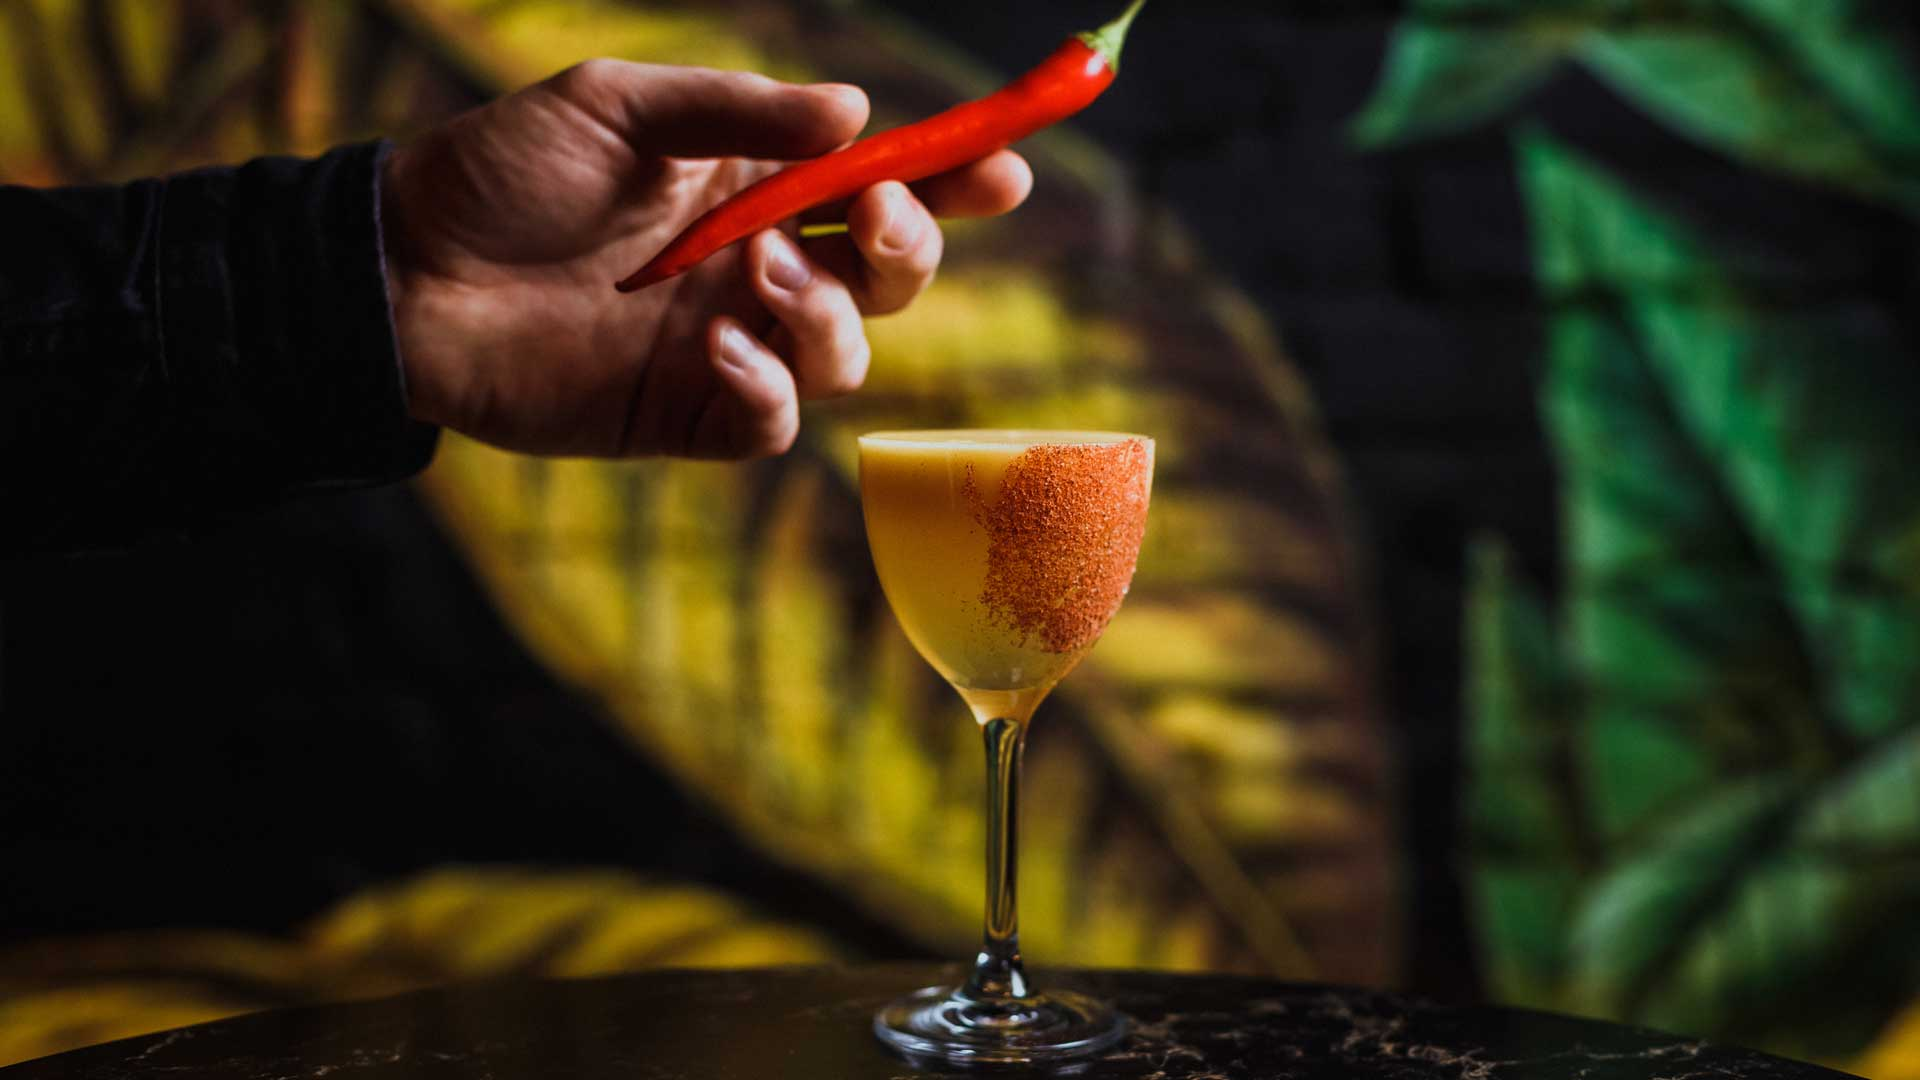 7-cocktail-messicani-ingredienti-ricette-Coqtail-Milano